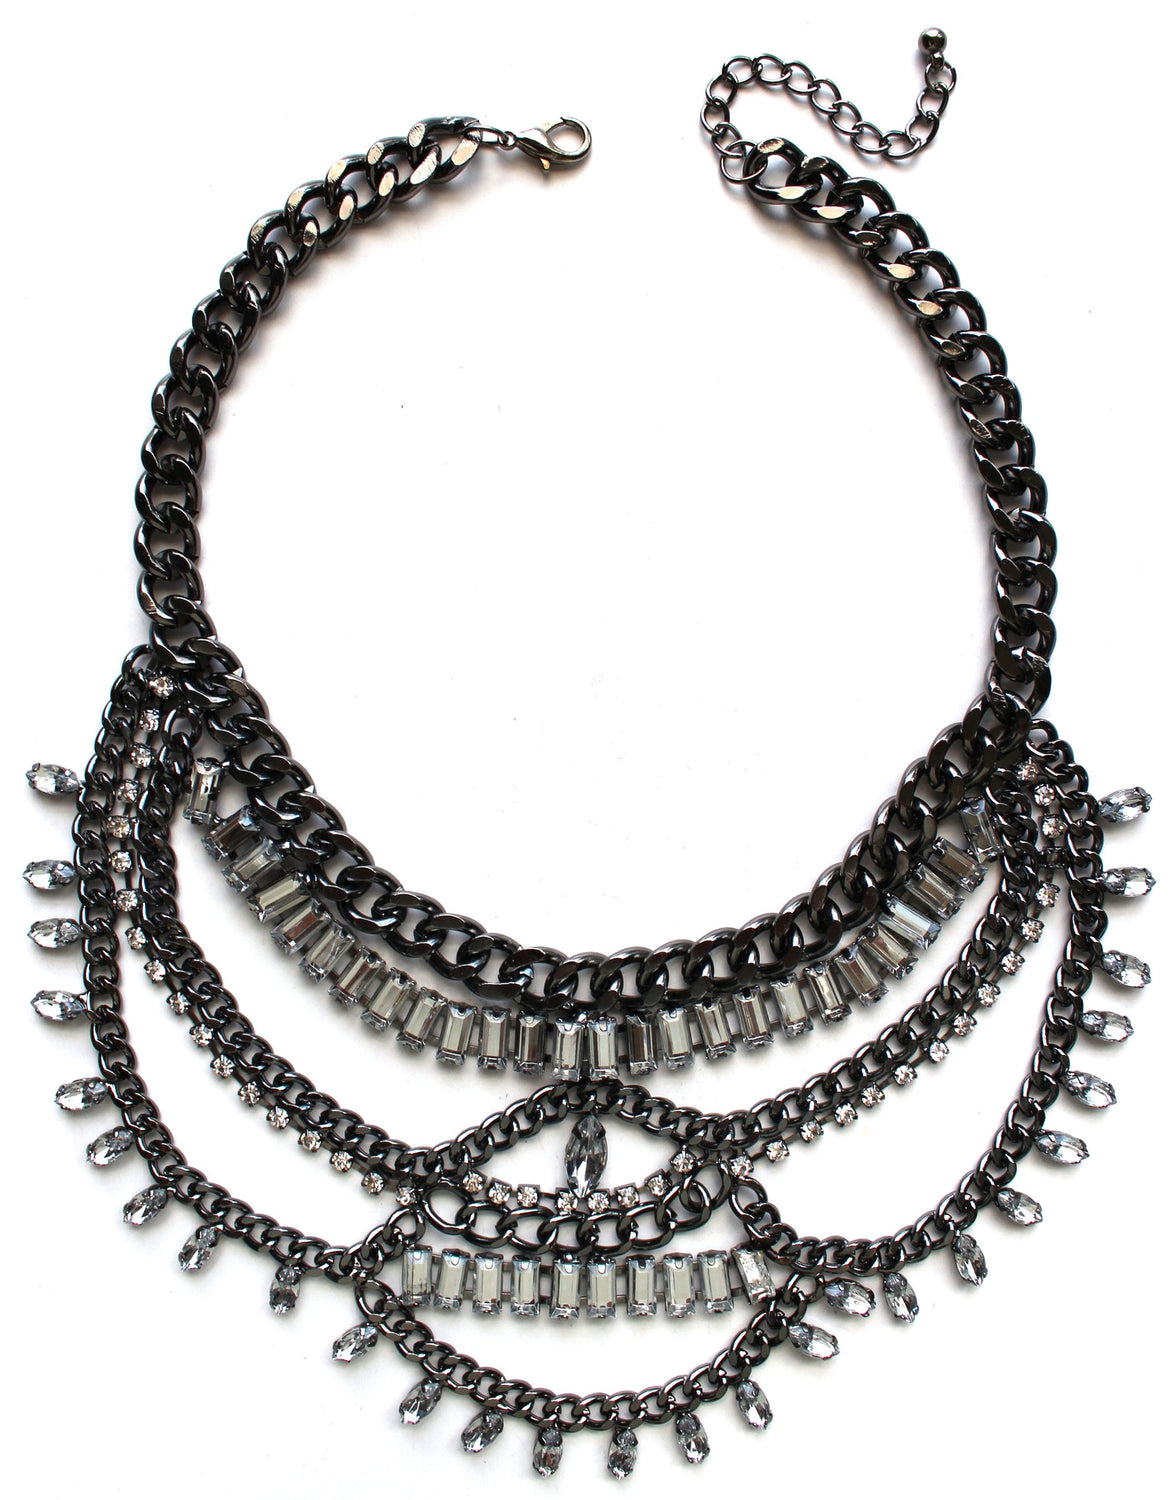 Embellished Urban Metal Chain Necklace